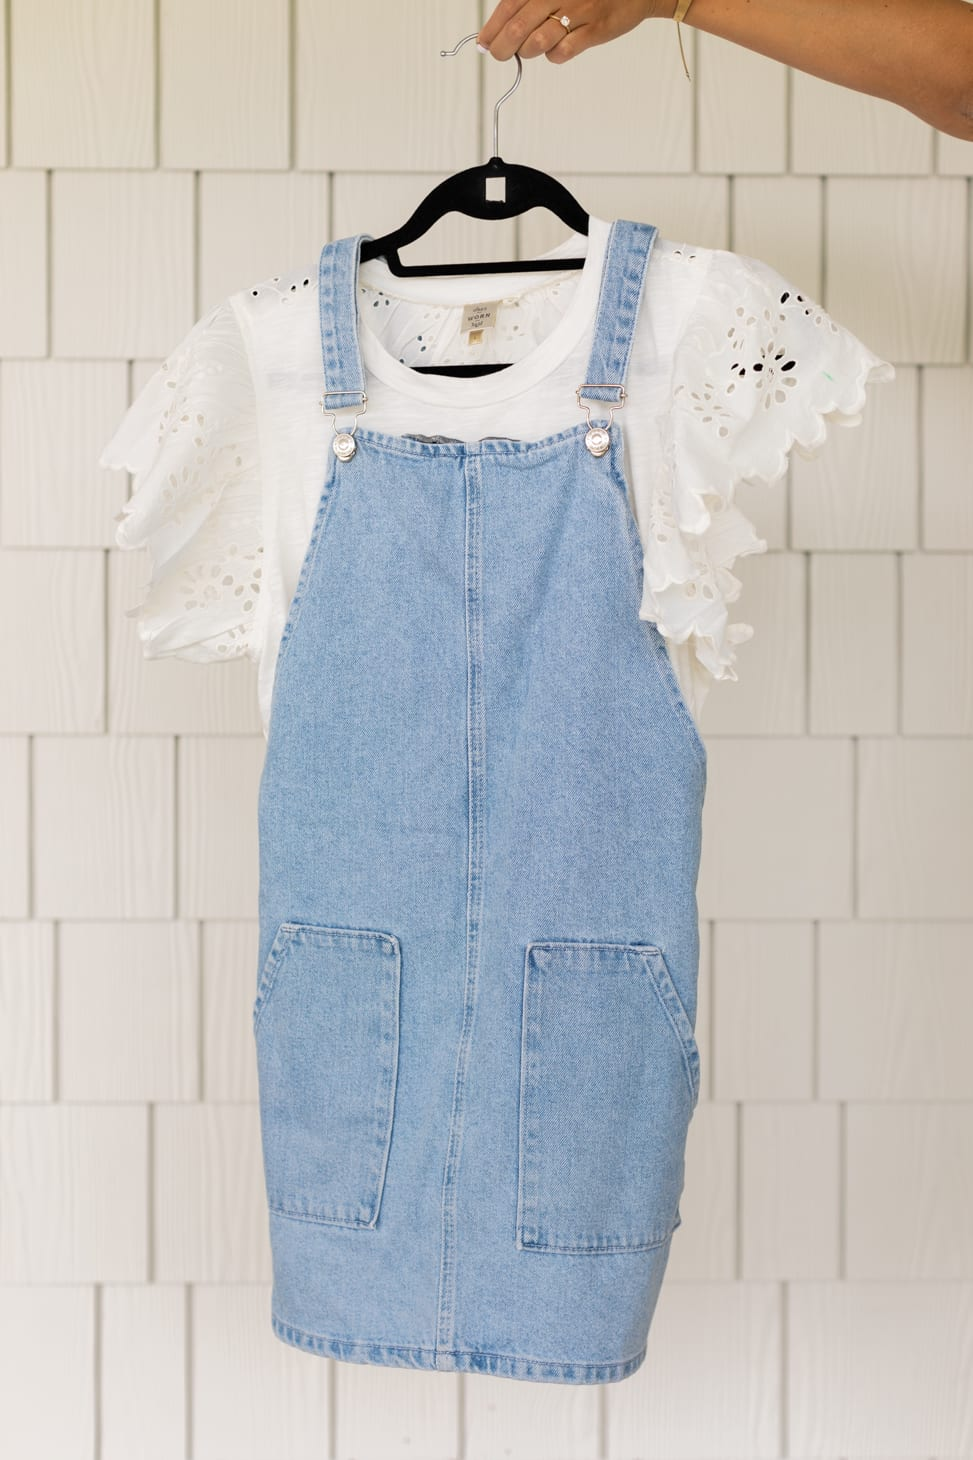 Knee length Overall Dress with a white t-shirt with floral pattern cut out on ruffled sleeves.